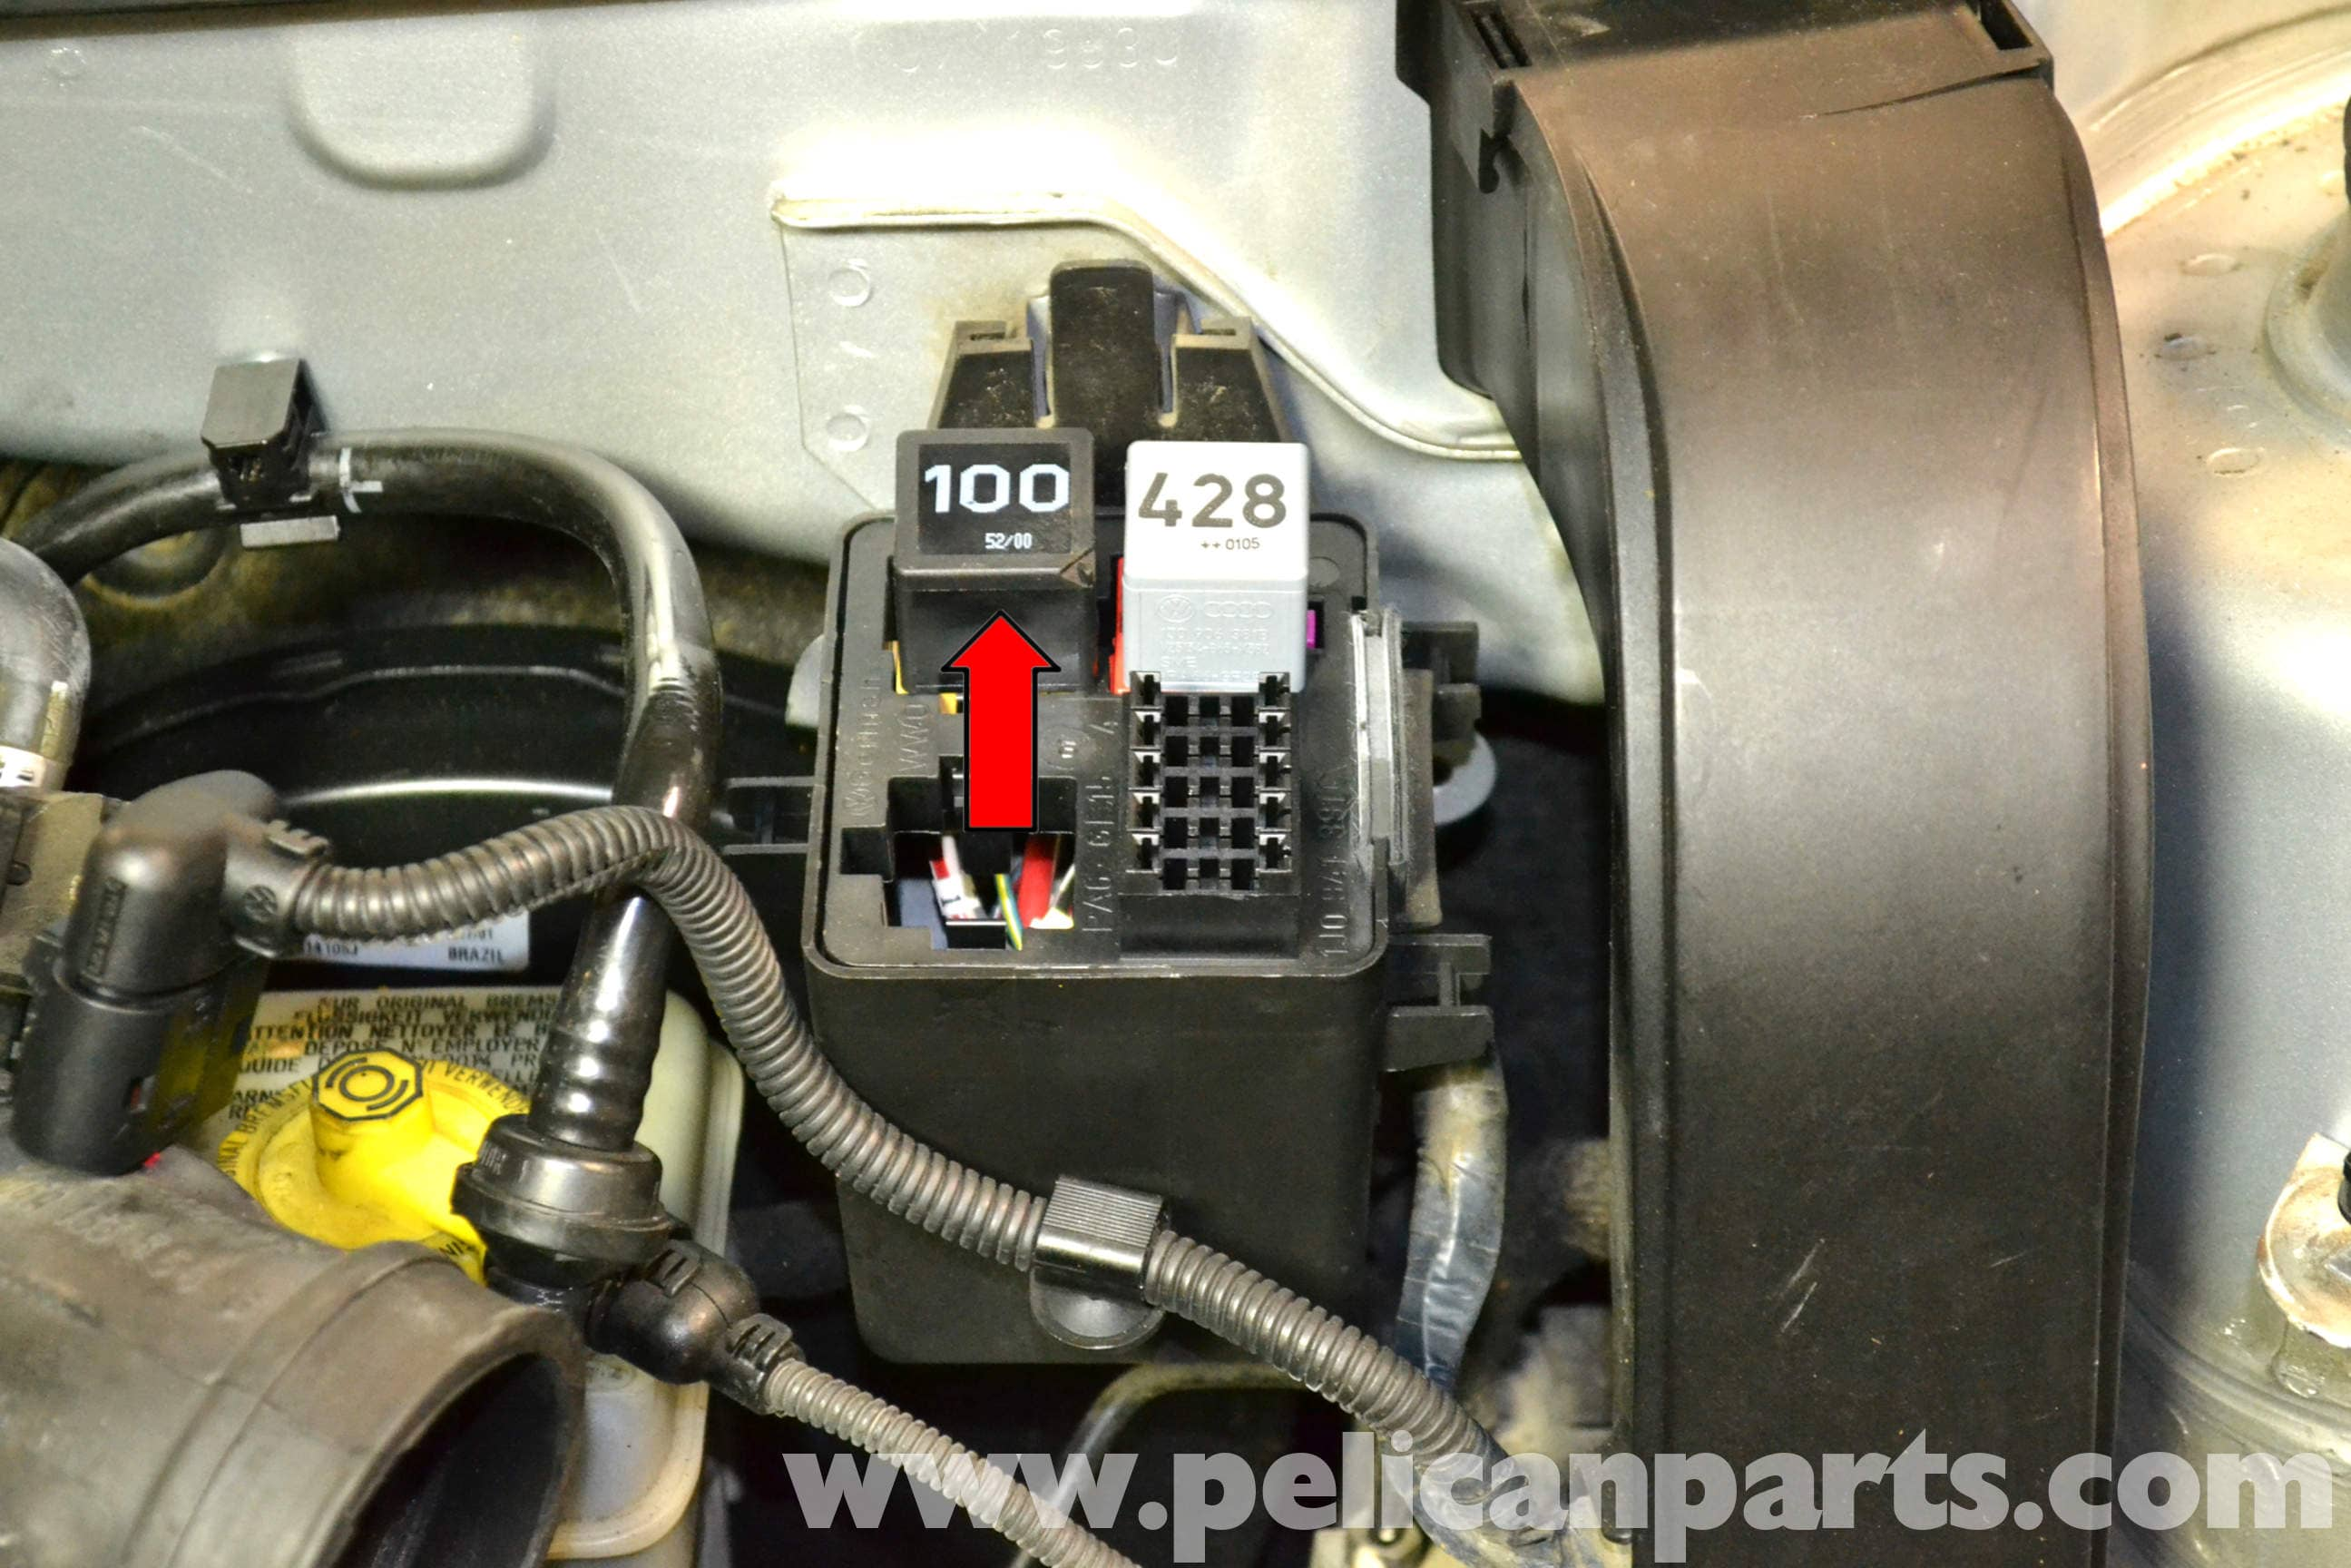 2003 Gti Fuel Pump Wiring Harness | Wiring Diagram